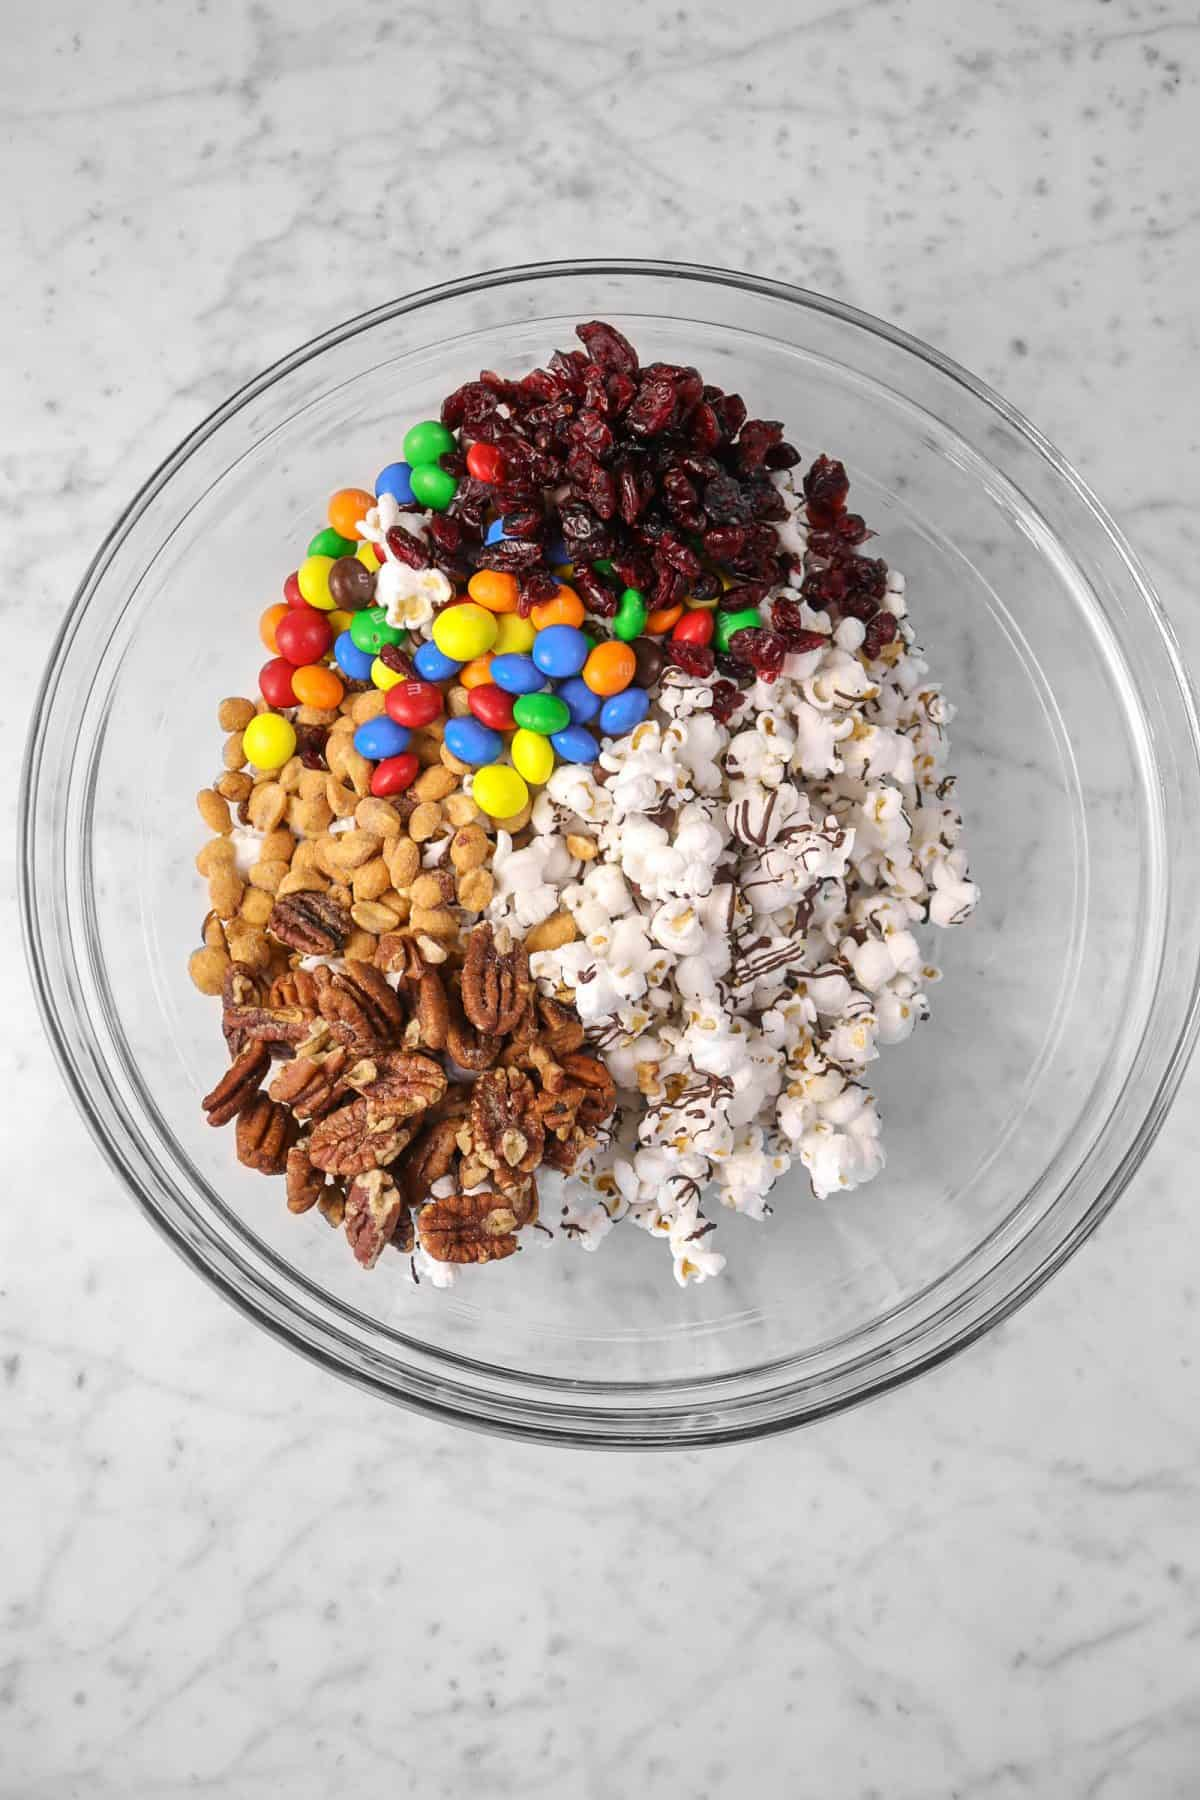 popcorn, cranberries, nuts, and m&m's in a glass bowl